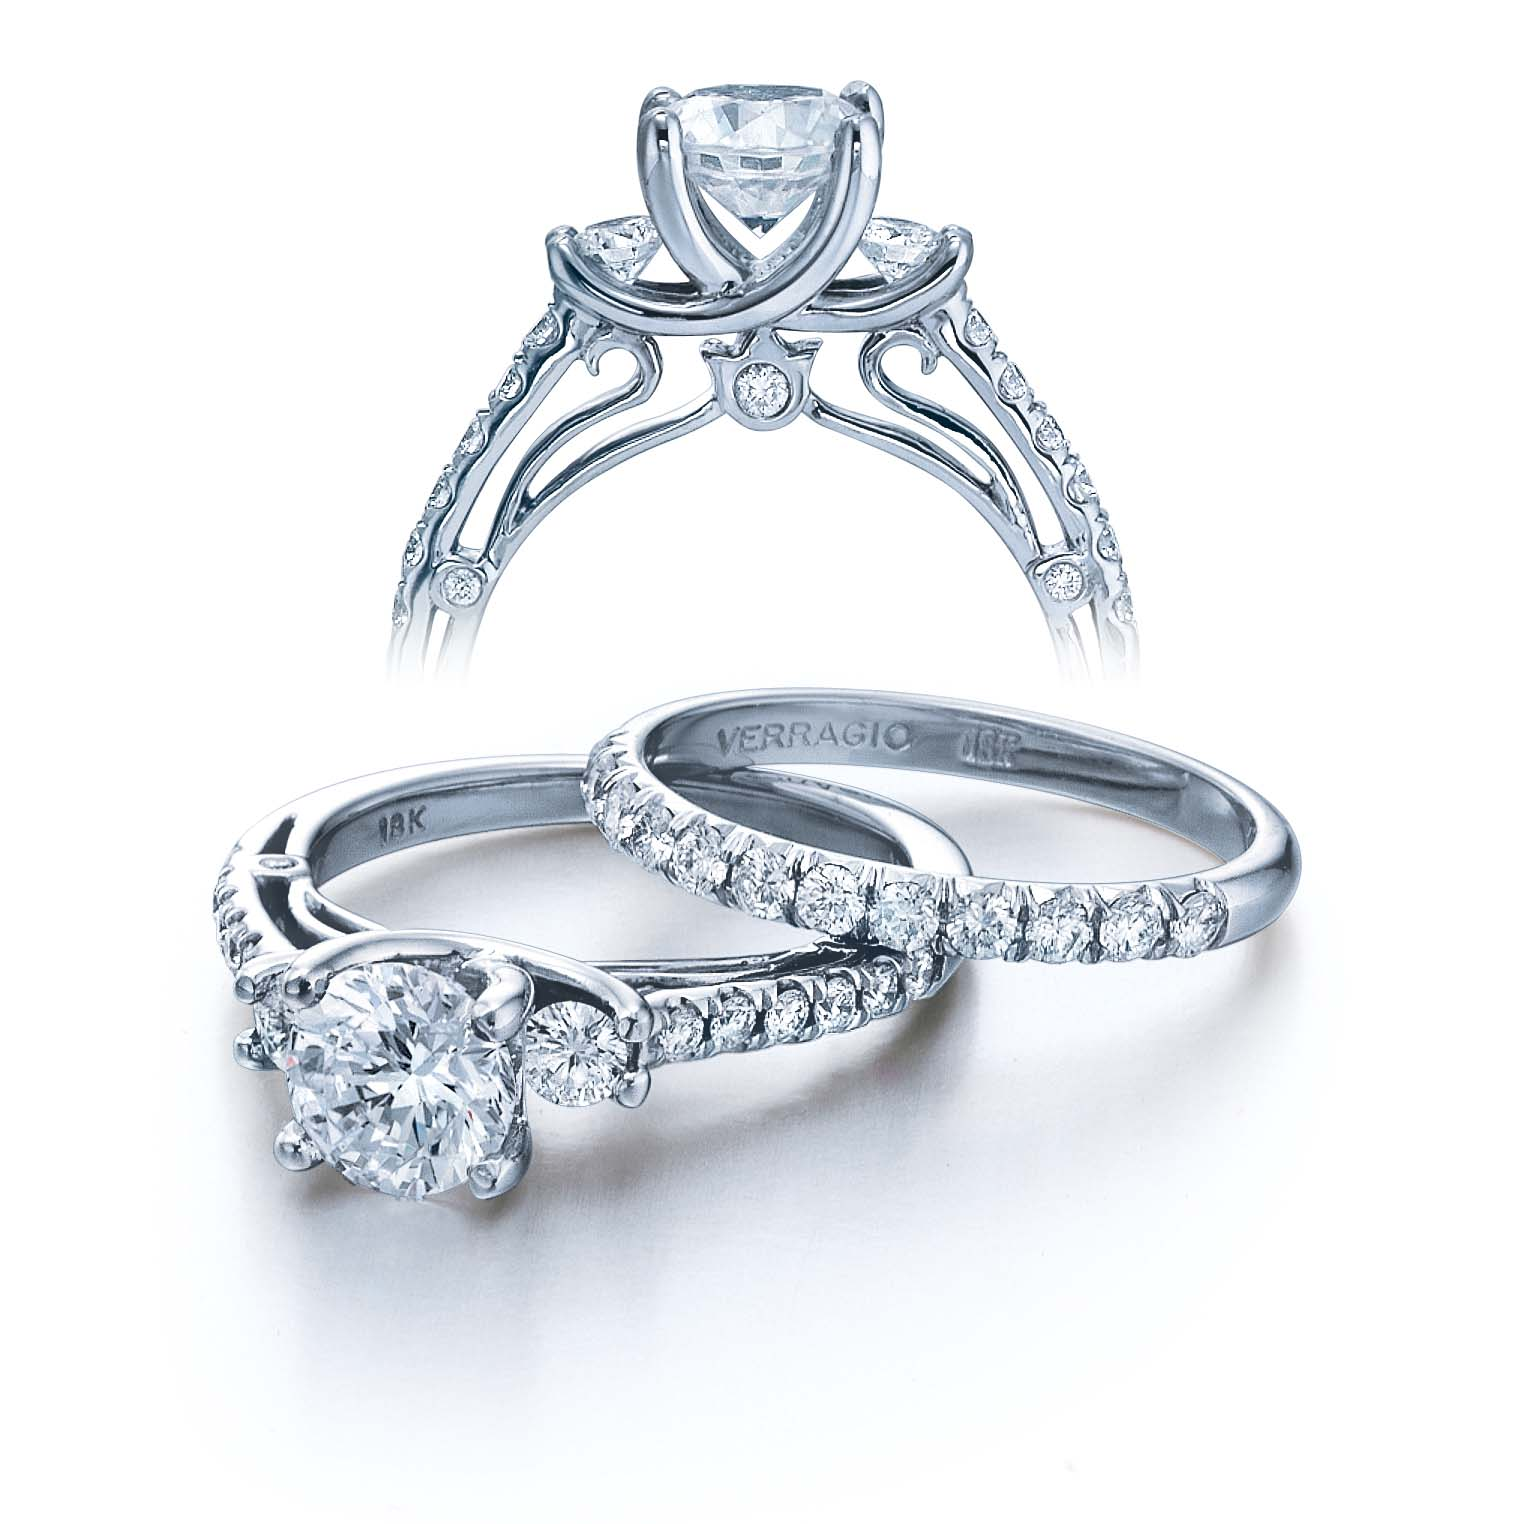 verragio to be the first engagement ring and wedding band designer